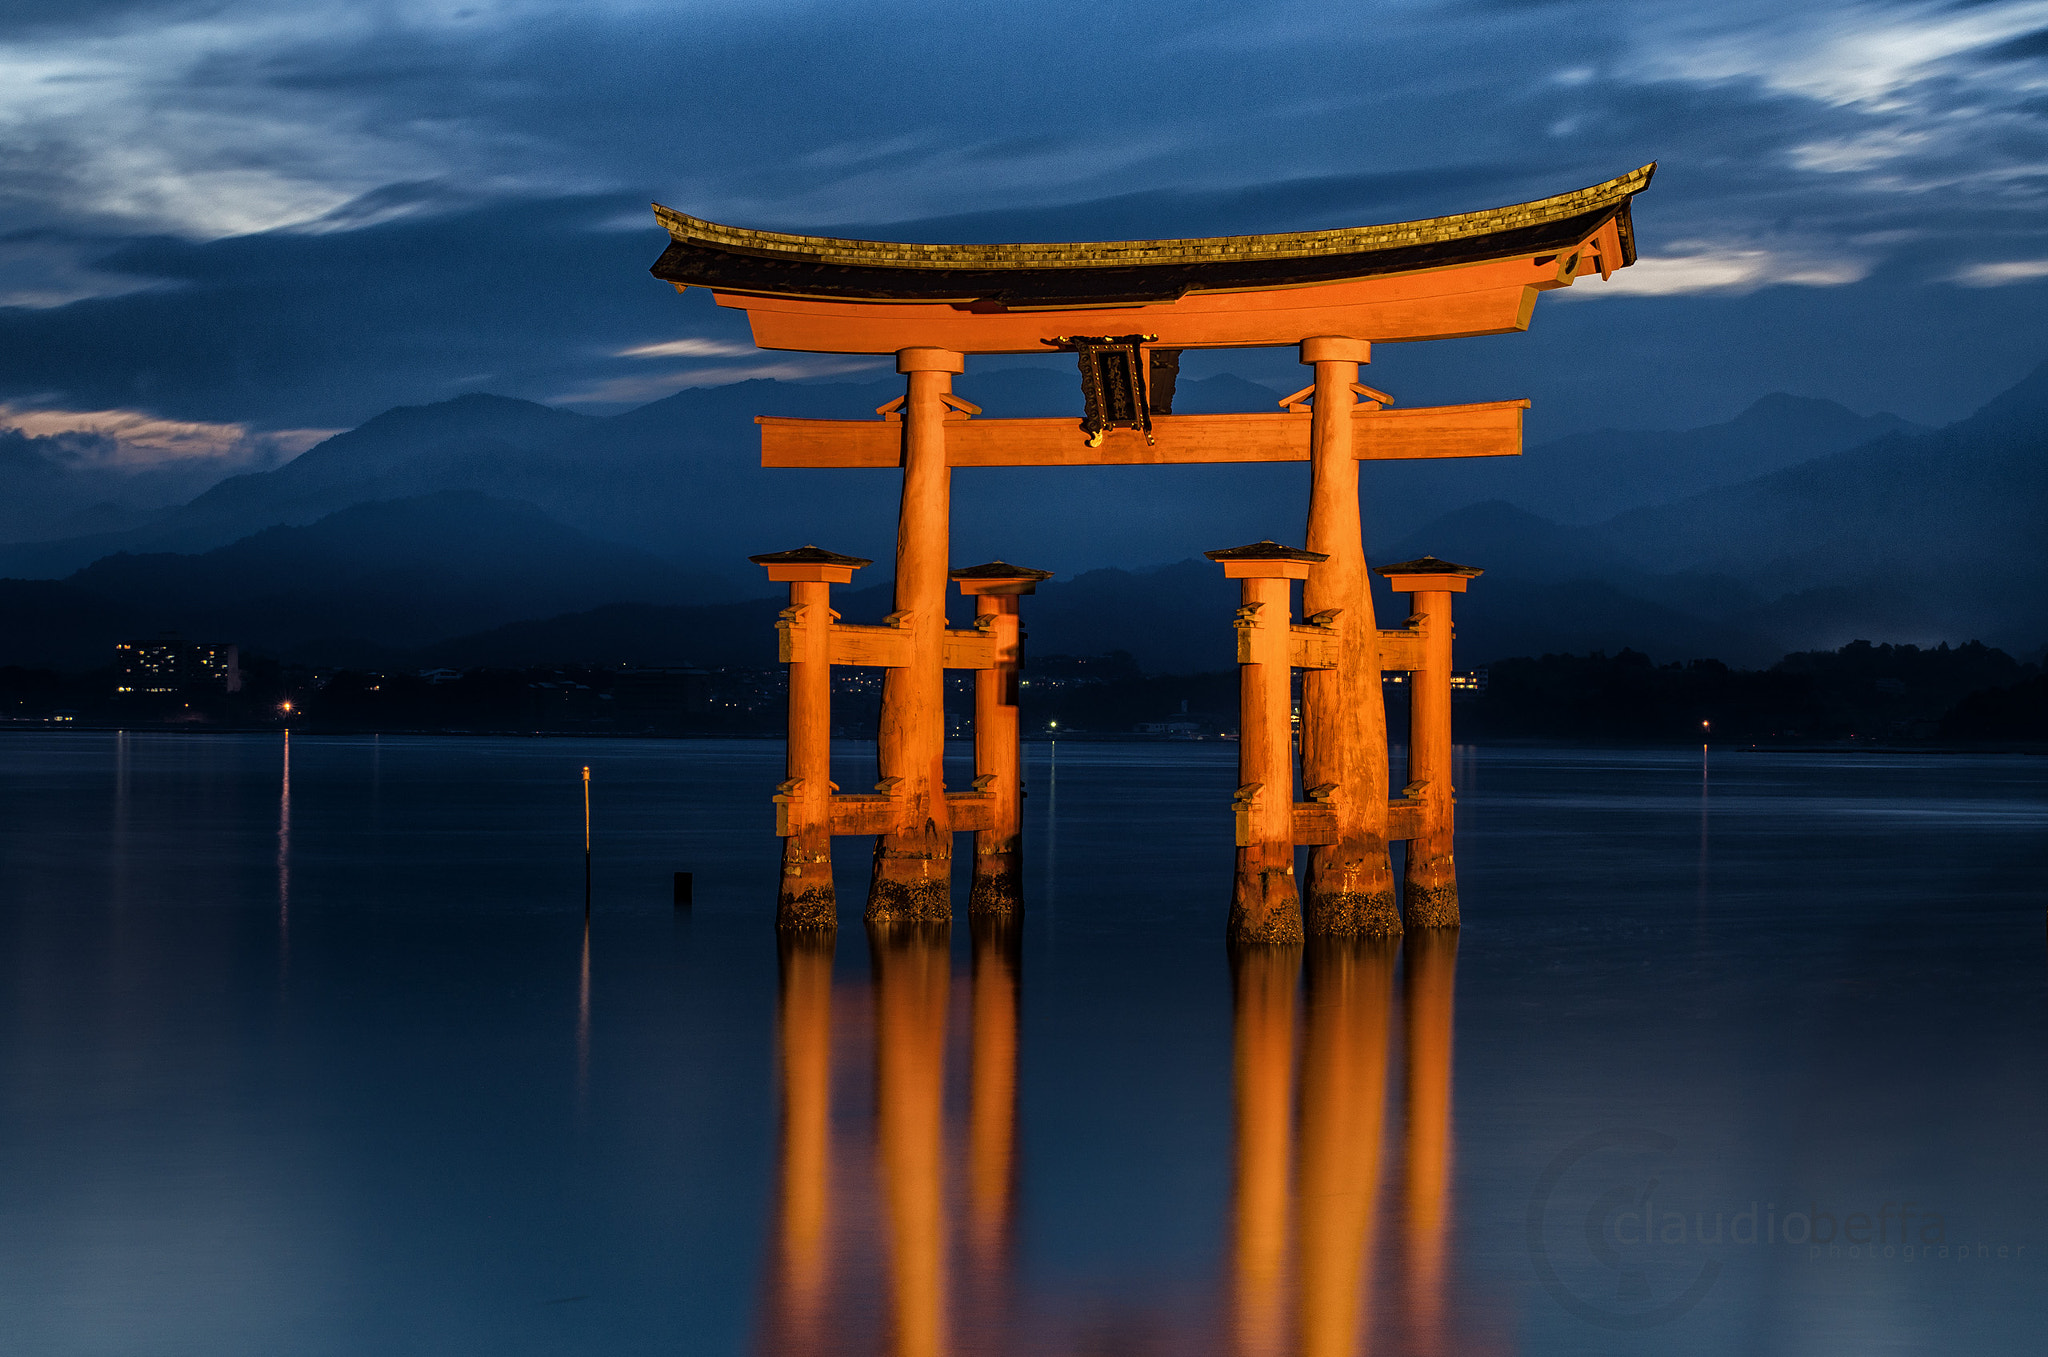 Photograph The Torii of Itsukushima by Claudio Beffa on 500px